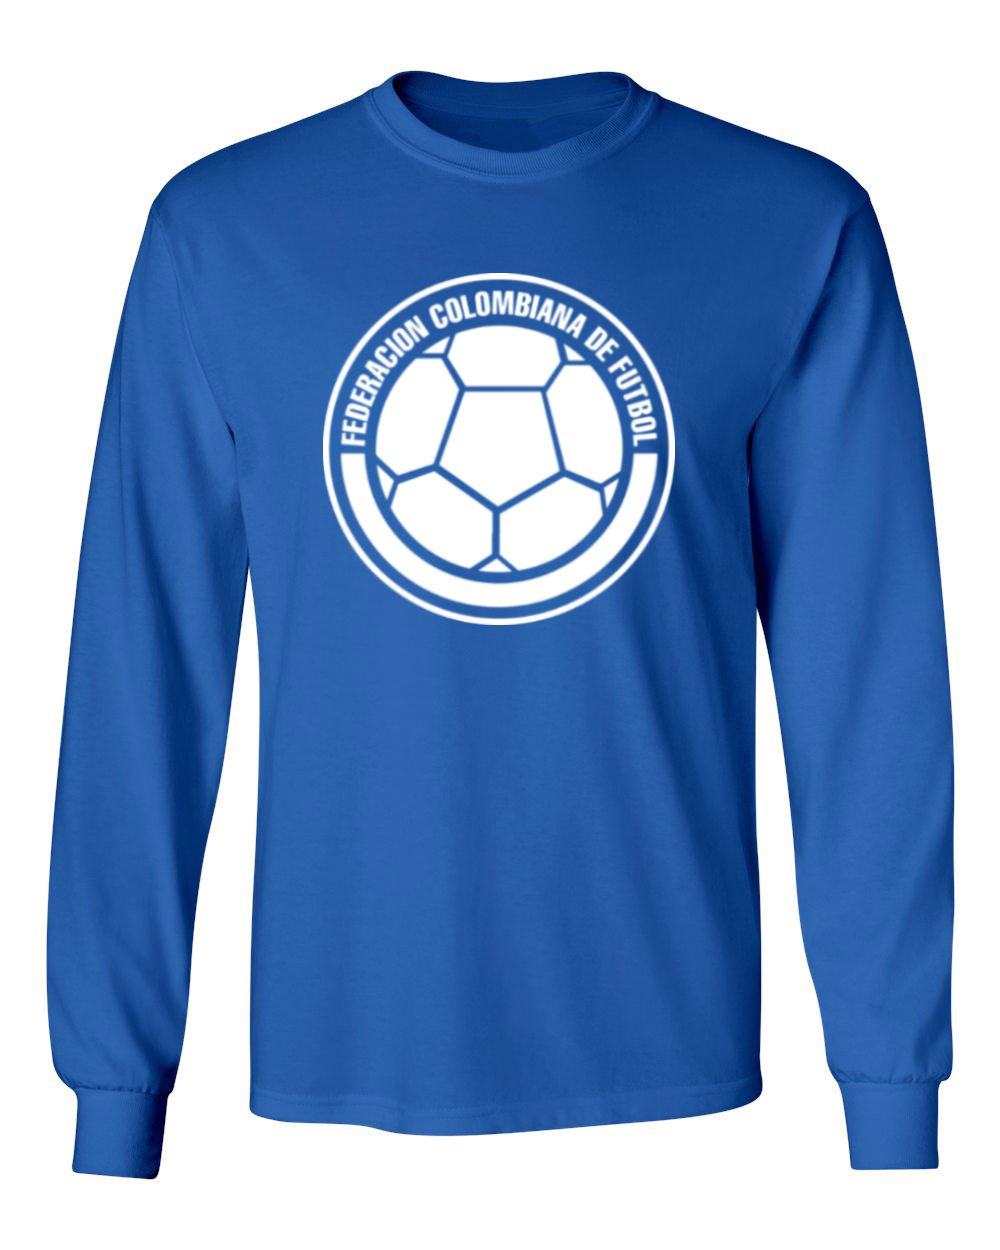 be392aae692 Amazon.com  Tcamp Colombia 2018 National Soccer  14 Luis MURIEL World  Championship Men s Long Sleeve T-Shirt  Sports   Outdoors